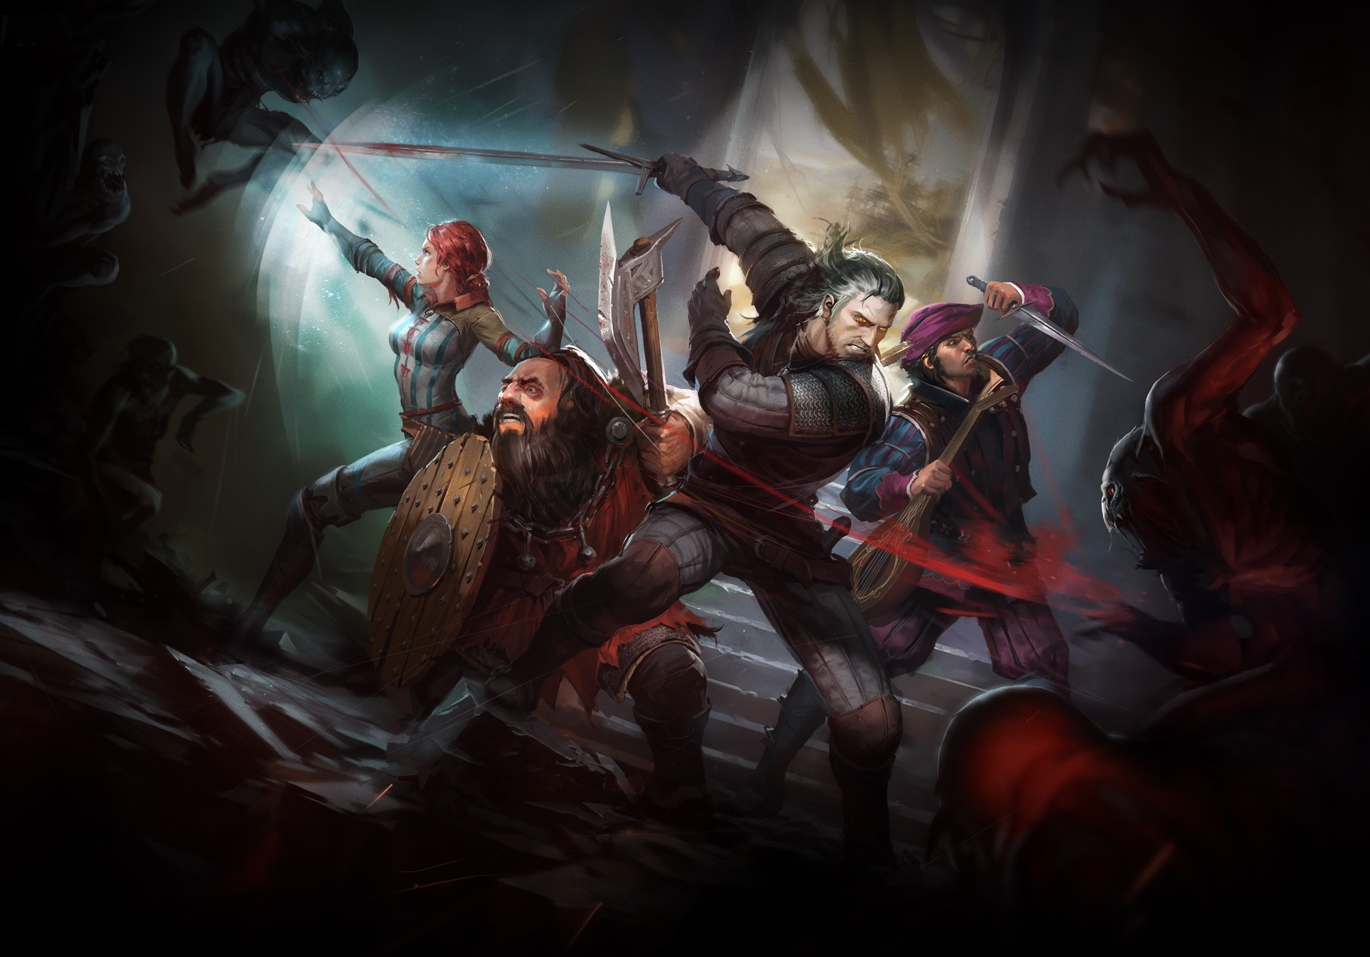 Witcher Adventure Game Leaves The Tabletop For Mac And PC VG247